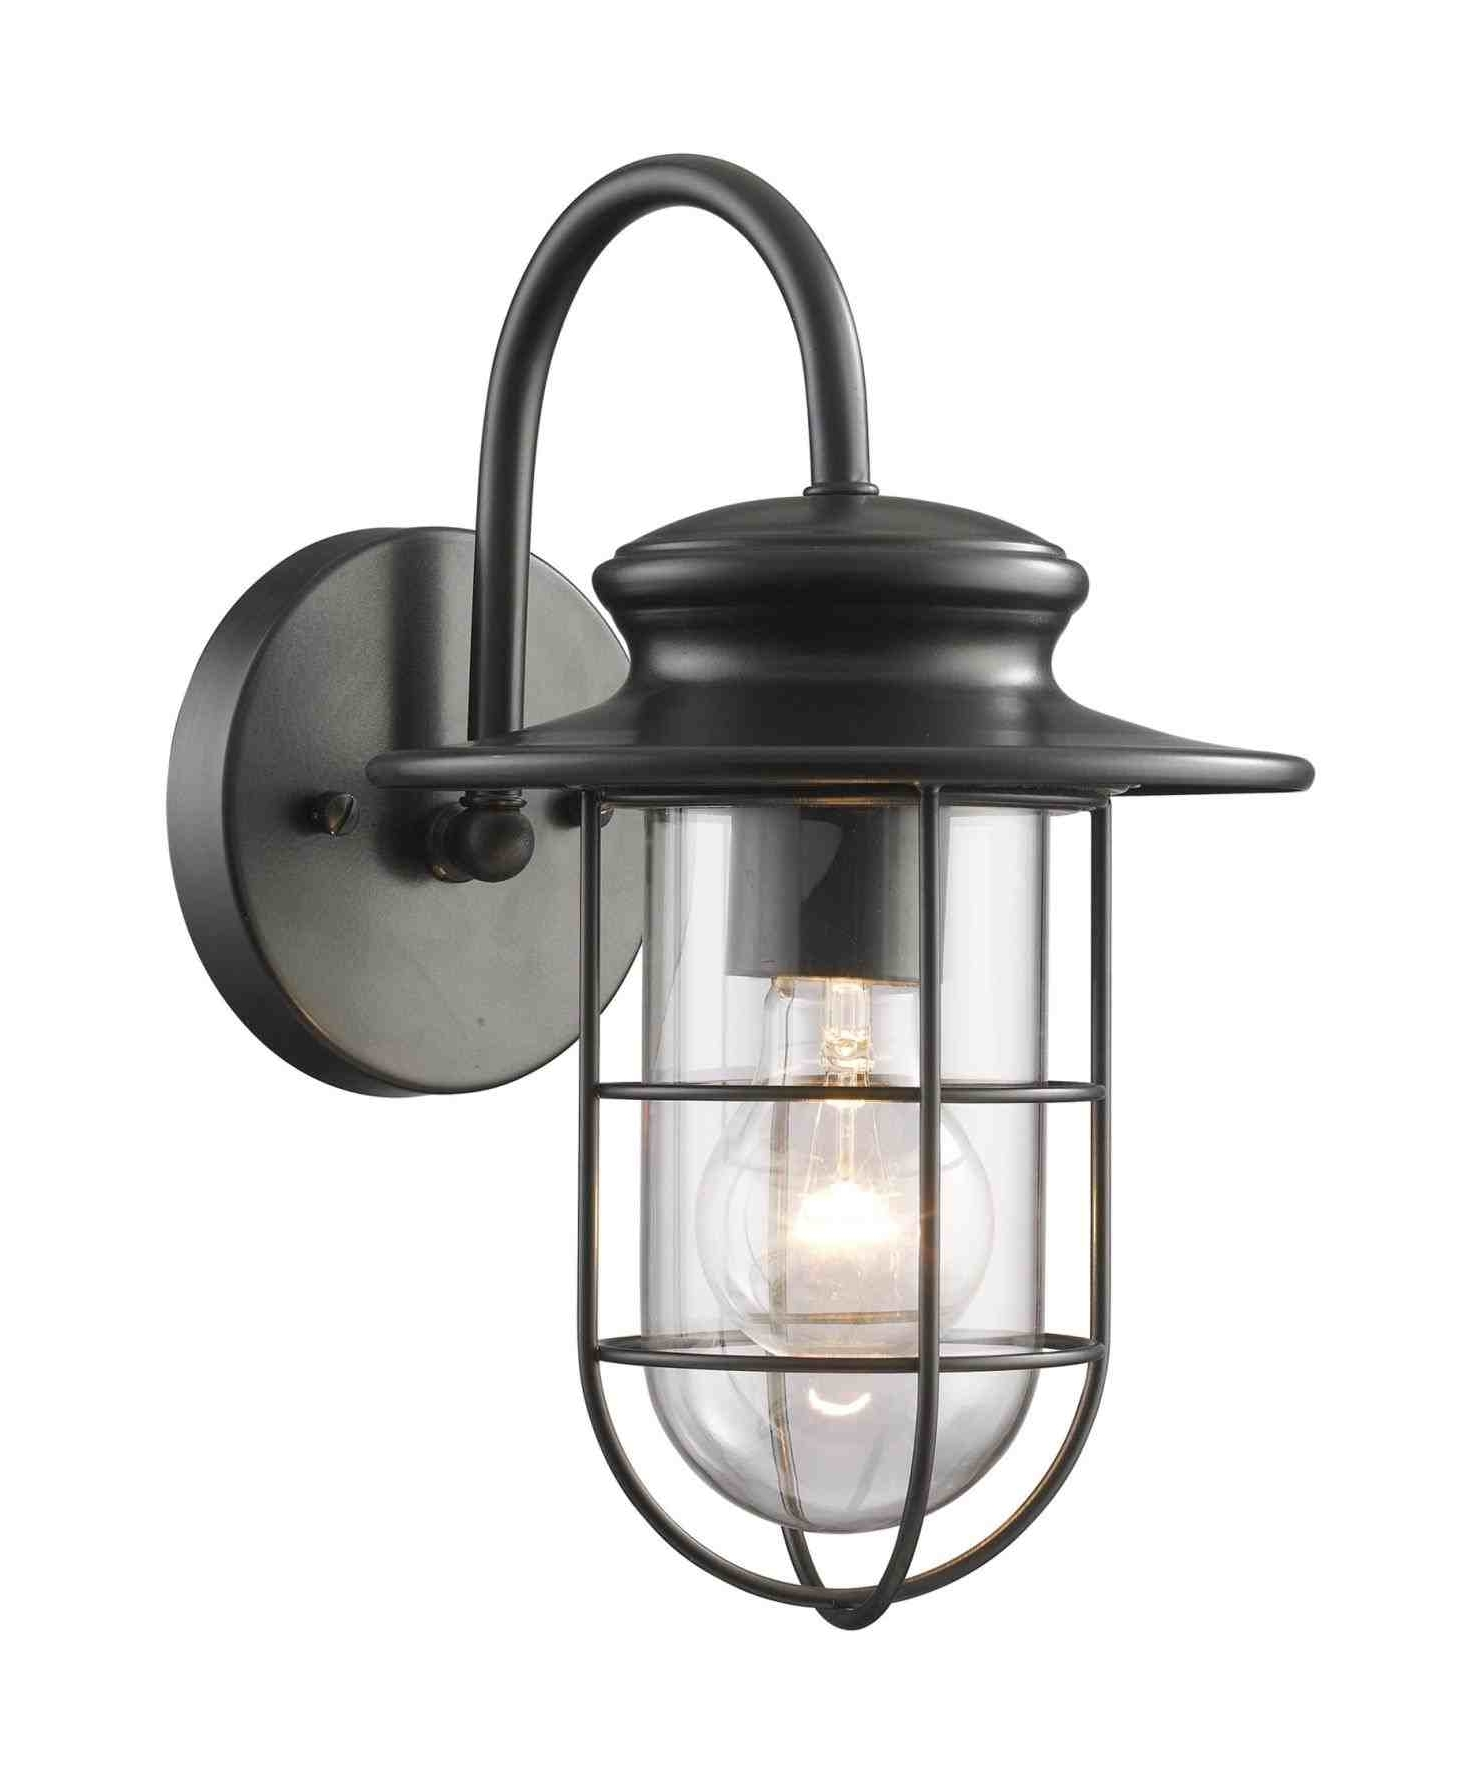 Outdoor Wall Lighting With Photocell Intended For Newest Lantern Rhetownncountrycom Outdoor Outdoor Wall Lights With (View 13 of 20)